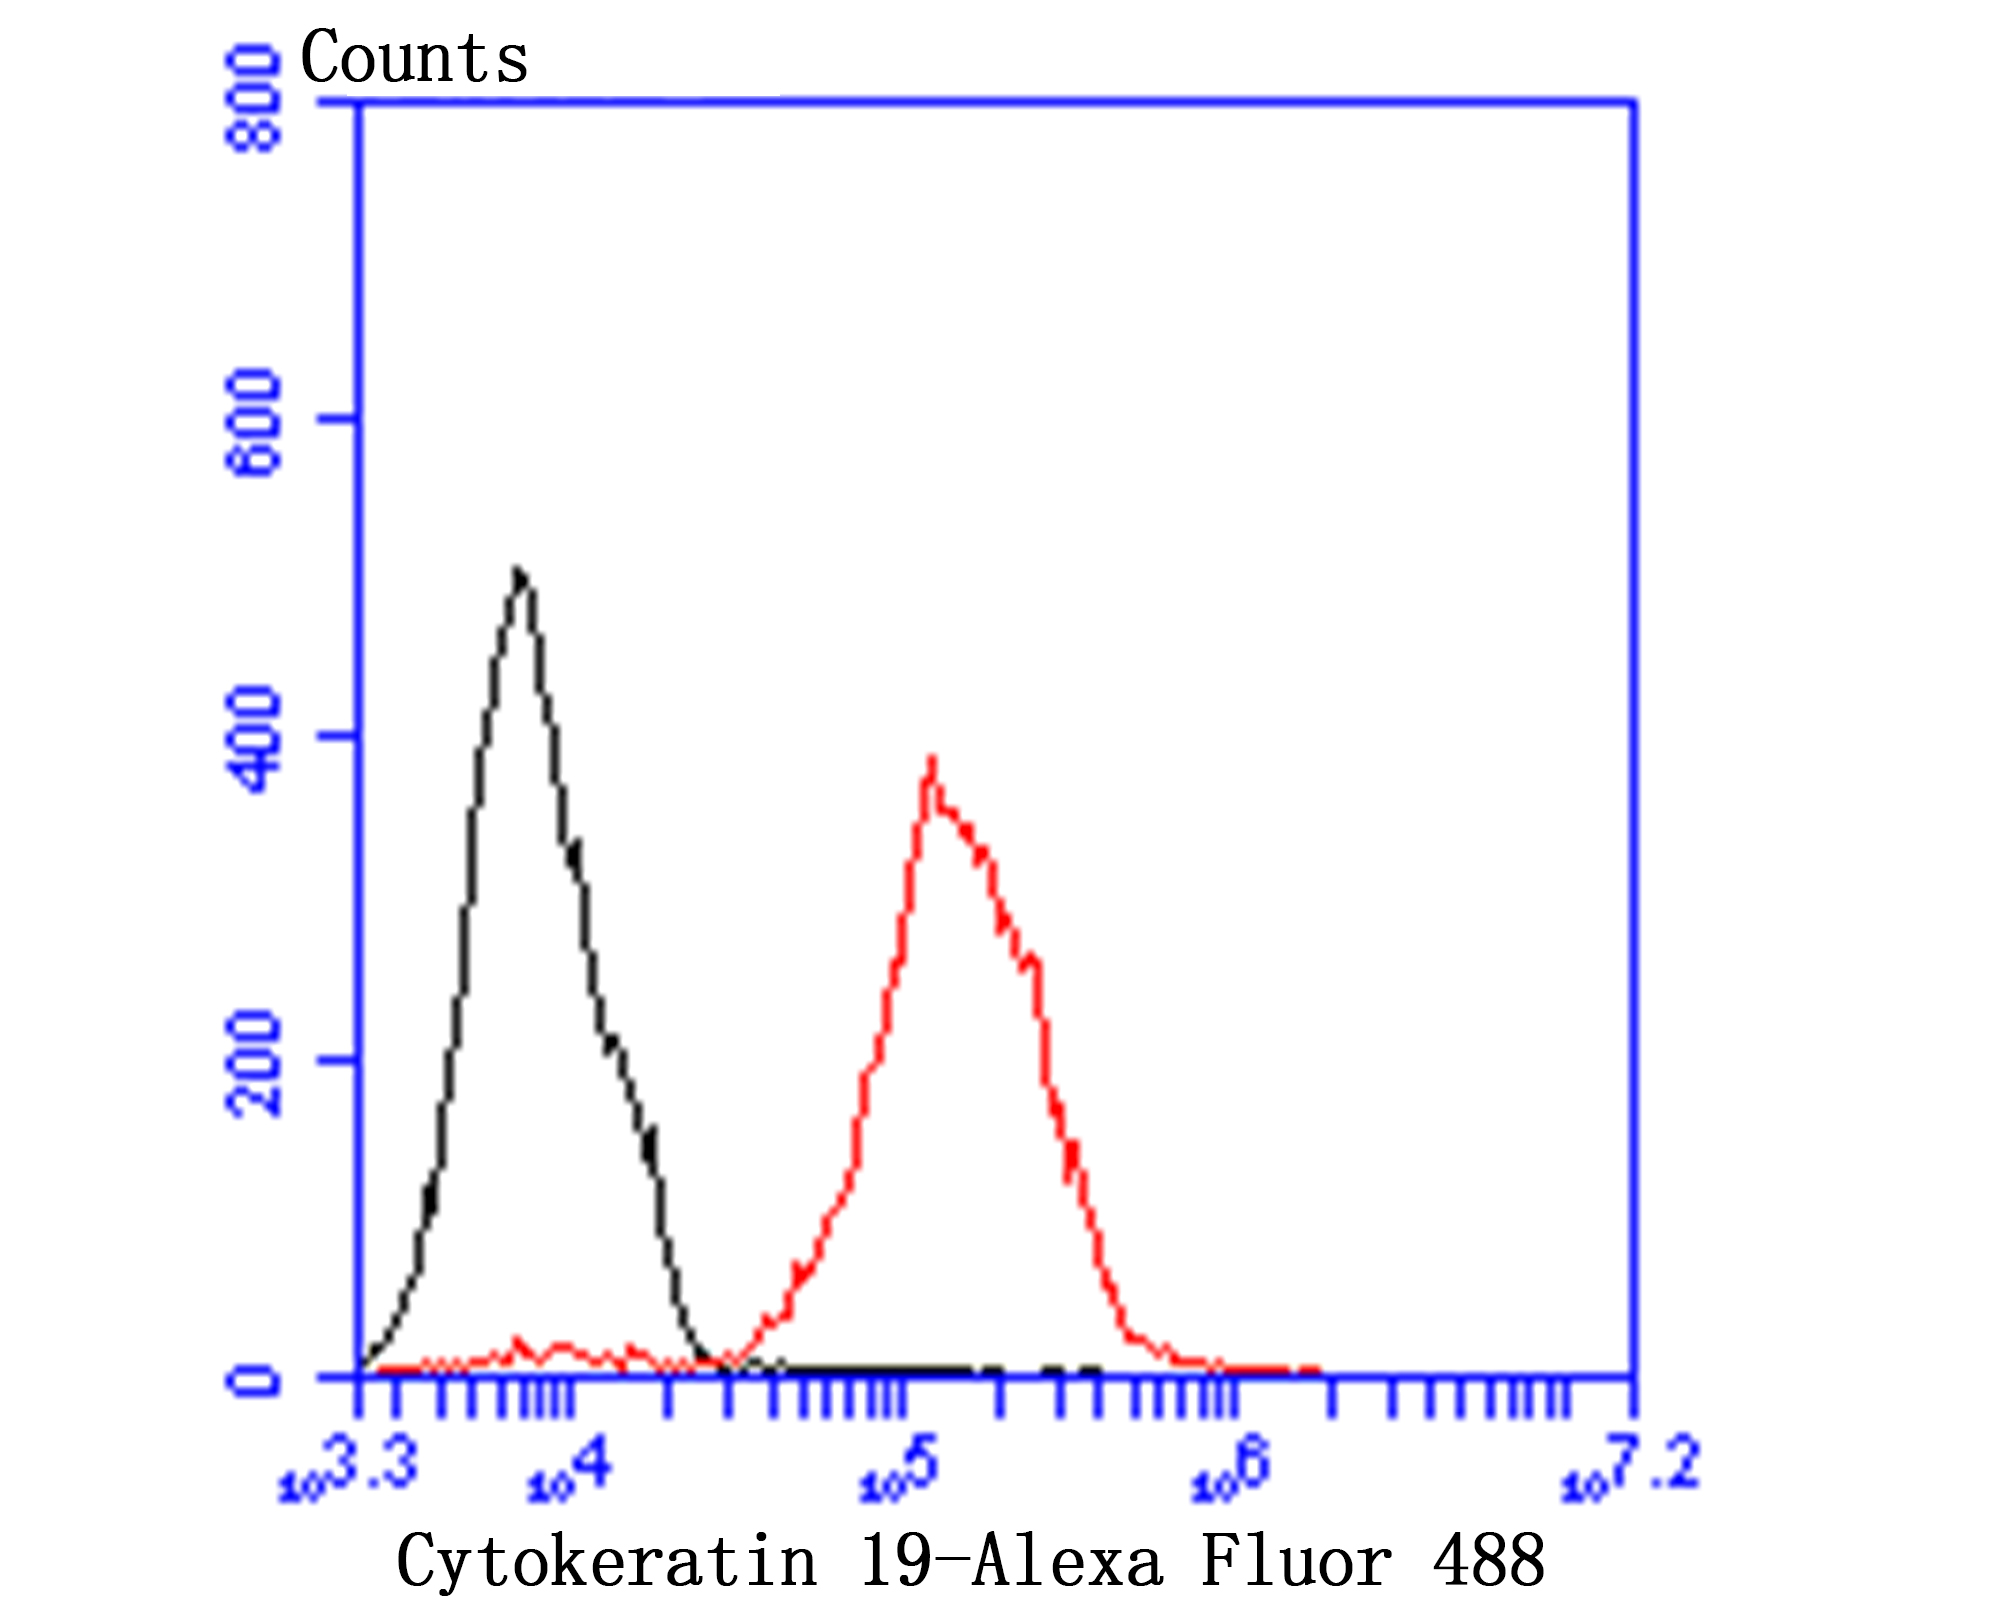 Flow cytometric analysis of Cytokeratin 19 was done on MCF-7 cells. The cells were fixed, permeabilized and stained with Cytokeratin 19 antibody at 1/100 dilution (red) compared with an unlabelled control (cells without incubation with primary antibody; black). After incubation of the primary antibody on room temperature for an hour, the cells was stained with a Alexa Fluor™ 488-conjugated goat anti-rabbit IgG Secondary antibody at 1/500 dilution for 30 minutes.